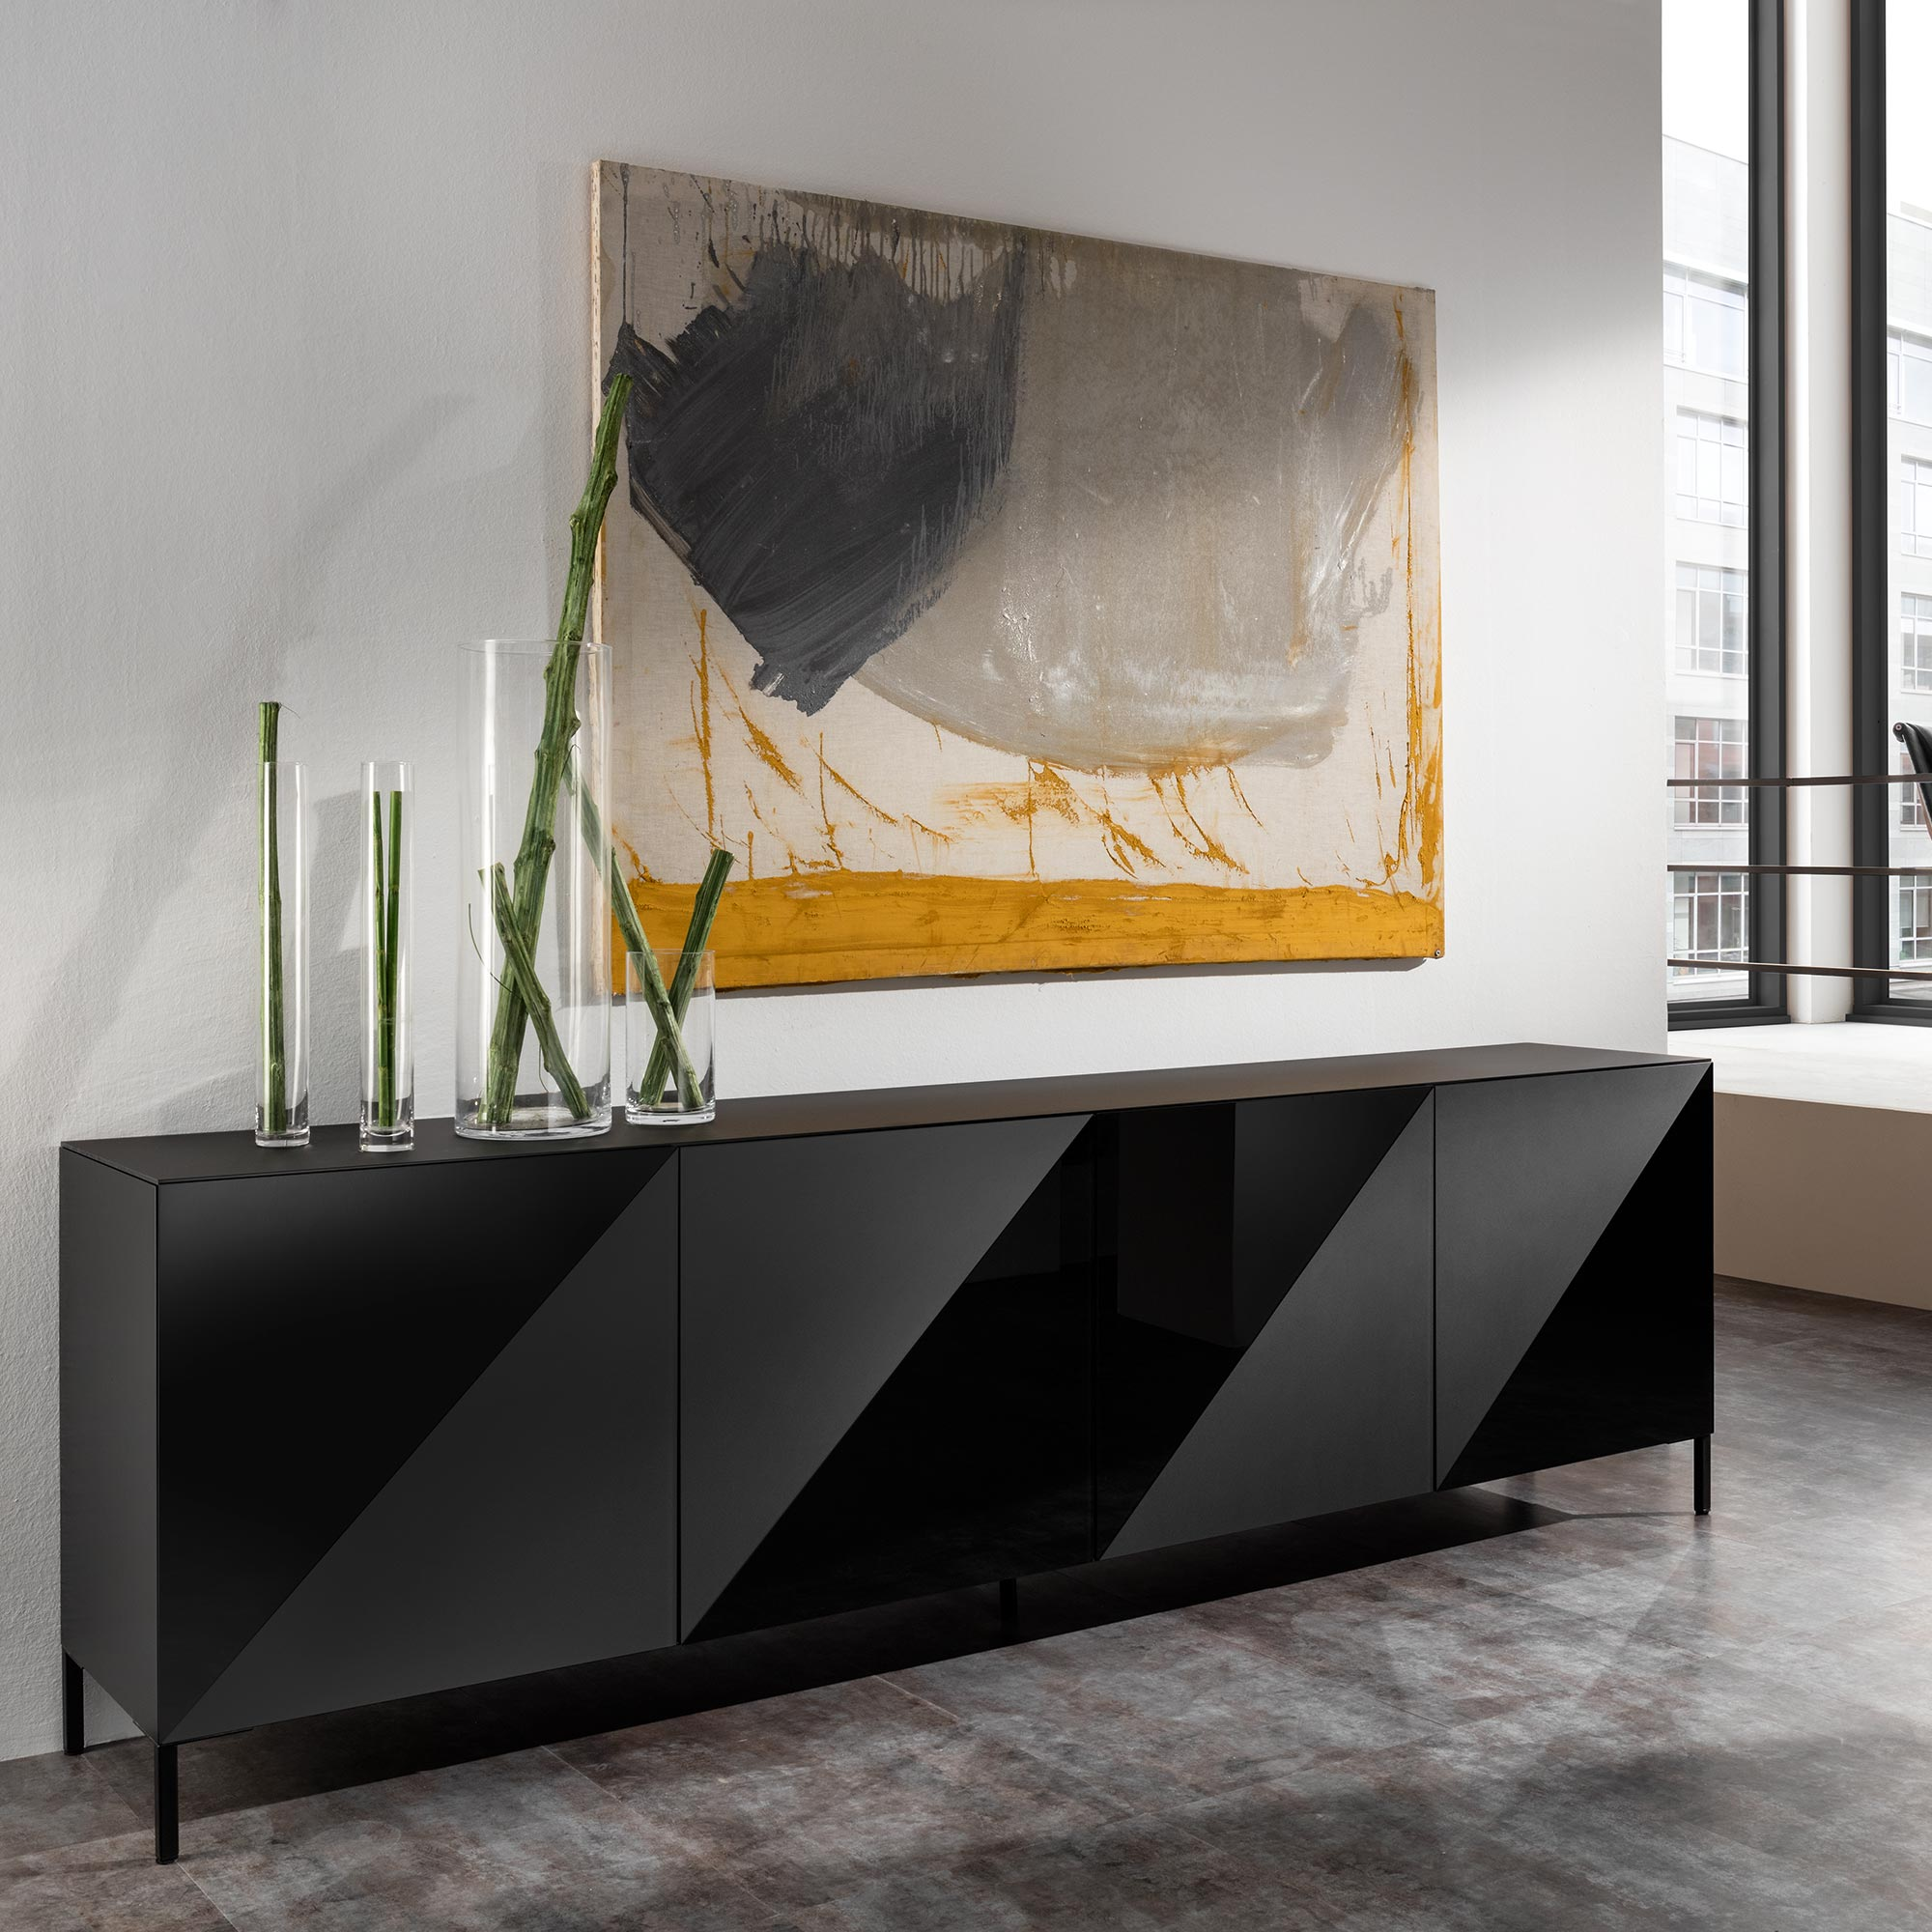 ayla sideboard schwarzmatt schwarzlack von mab m bel b r ag. Black Bedroom Furniture Sets. Home Design Ideas